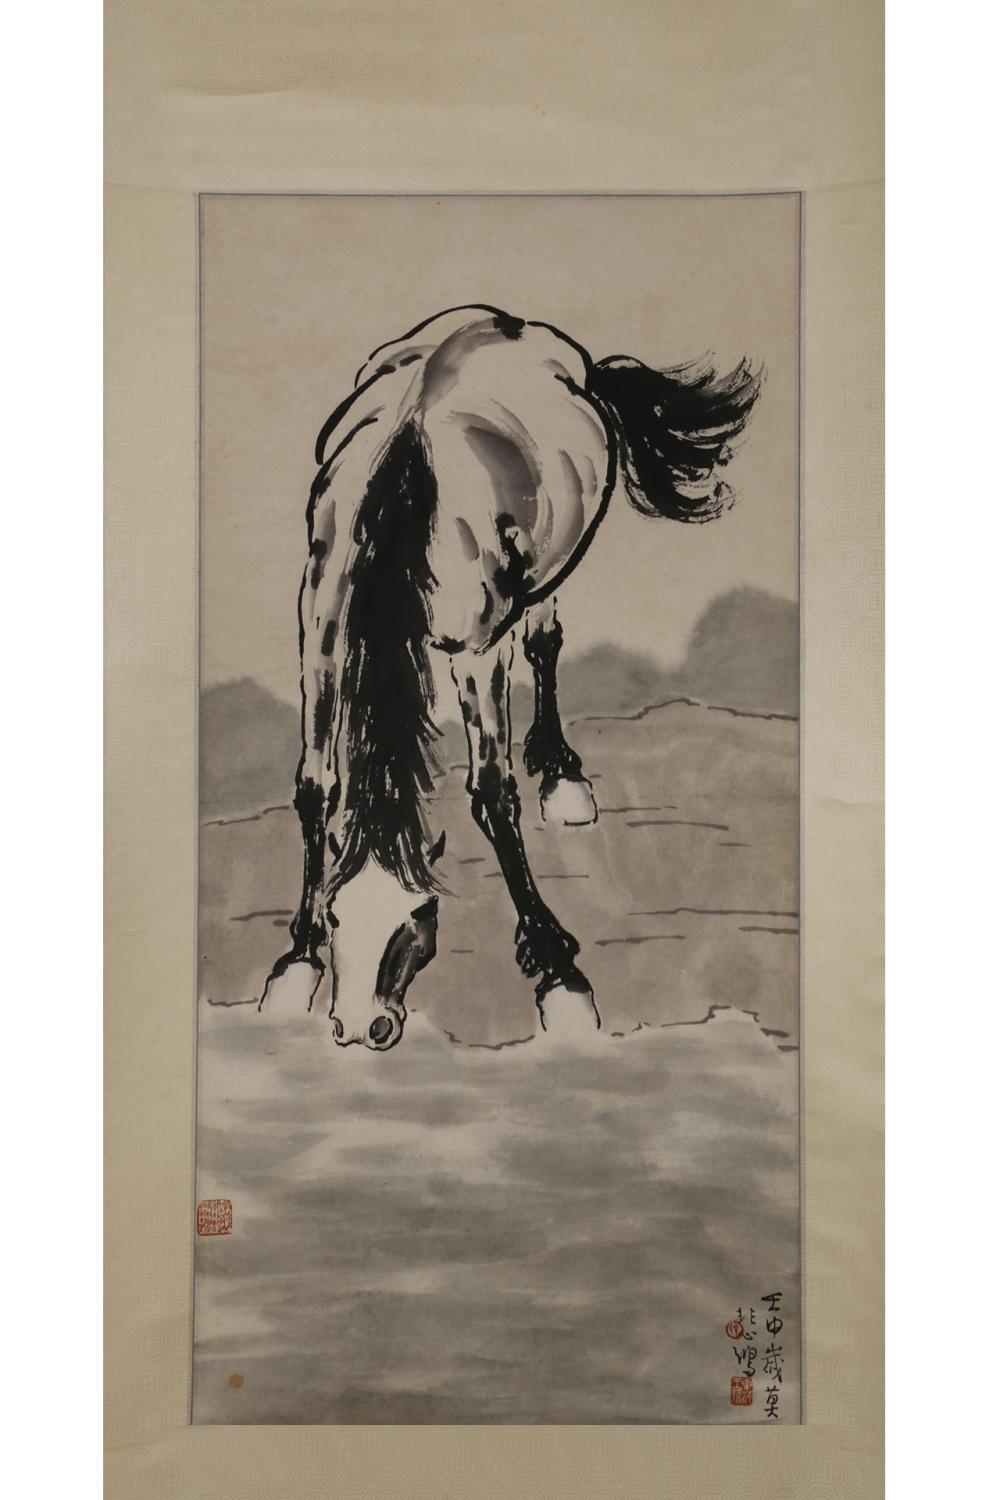 CHINESE INK PAINTING OF A HORSE DRINKING WATER